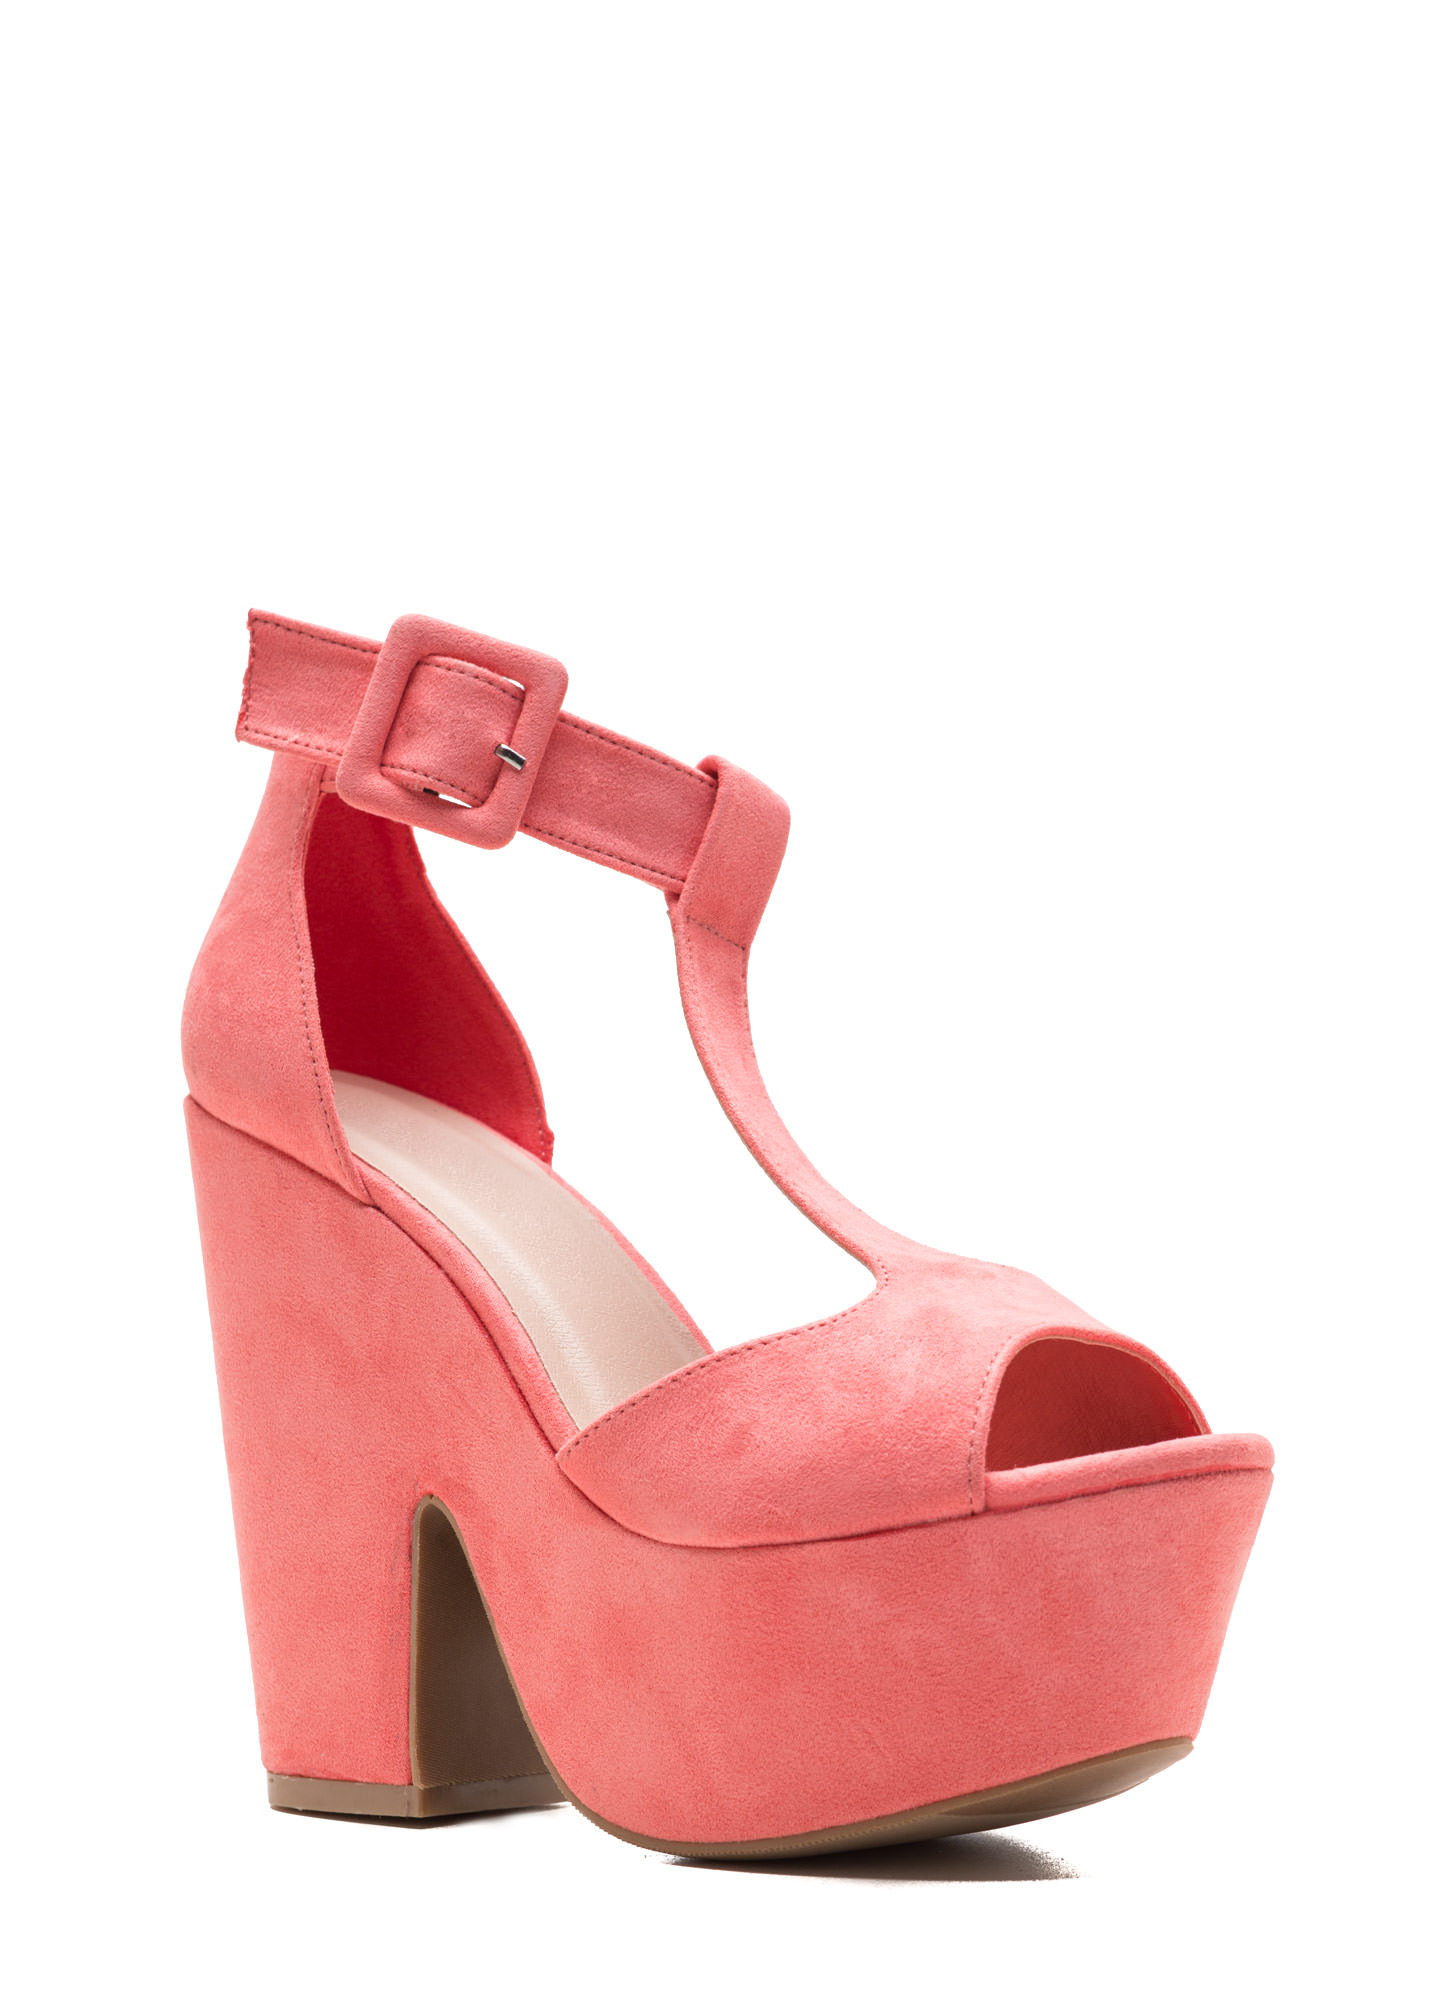 Thru Thick 'N Thin Faux Suede Heels BLUSH